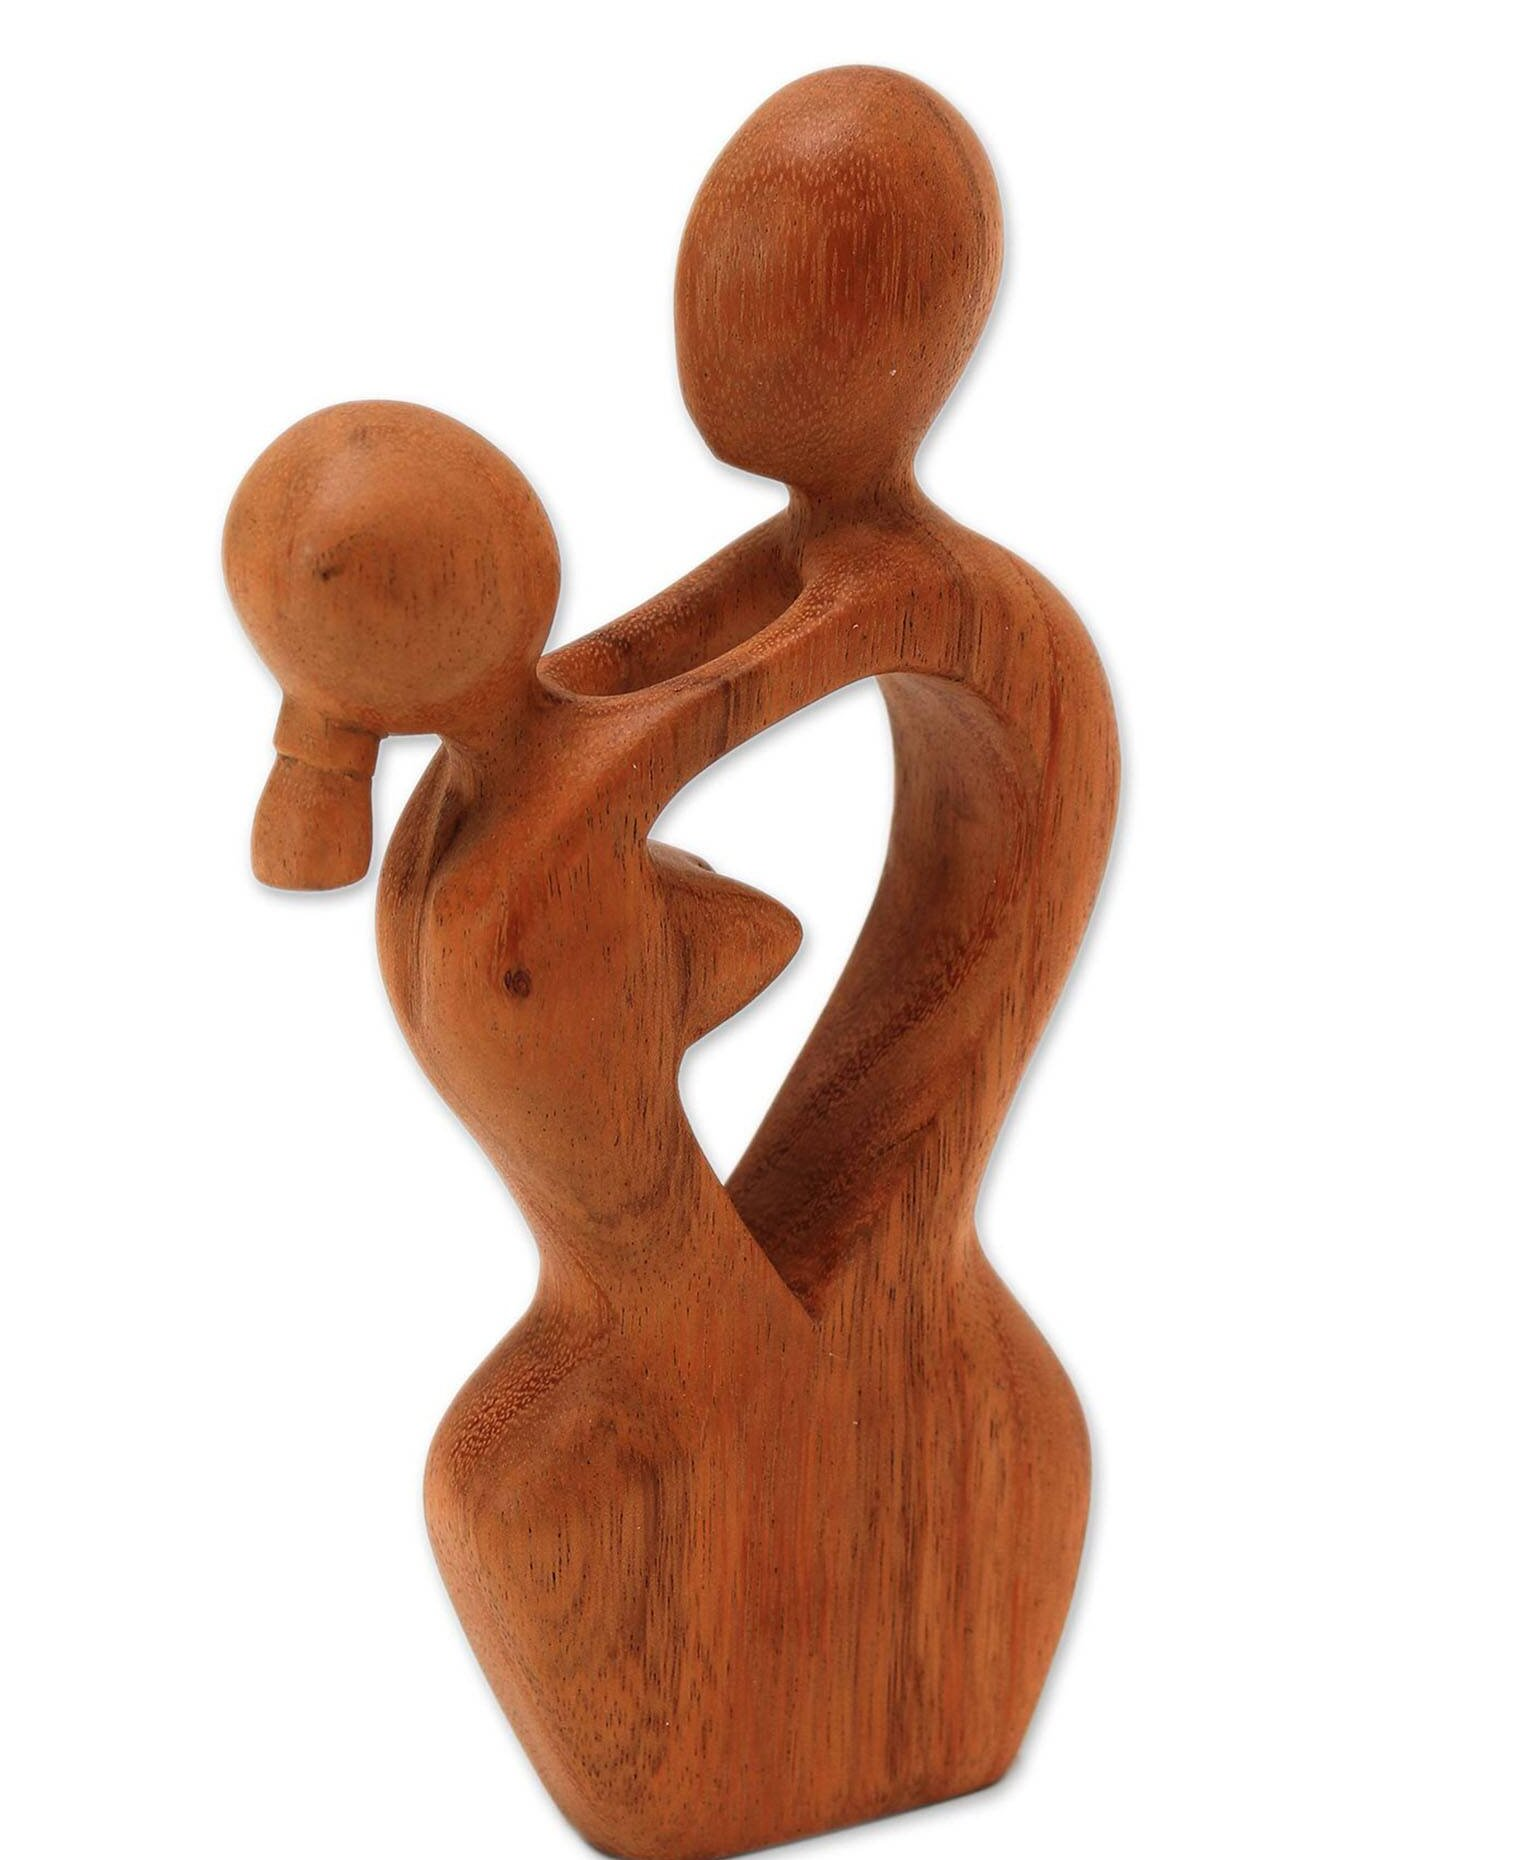 Figurines Sculptures Valentine S Day Decorative Objects You Ll Love In 2021 Wayfair